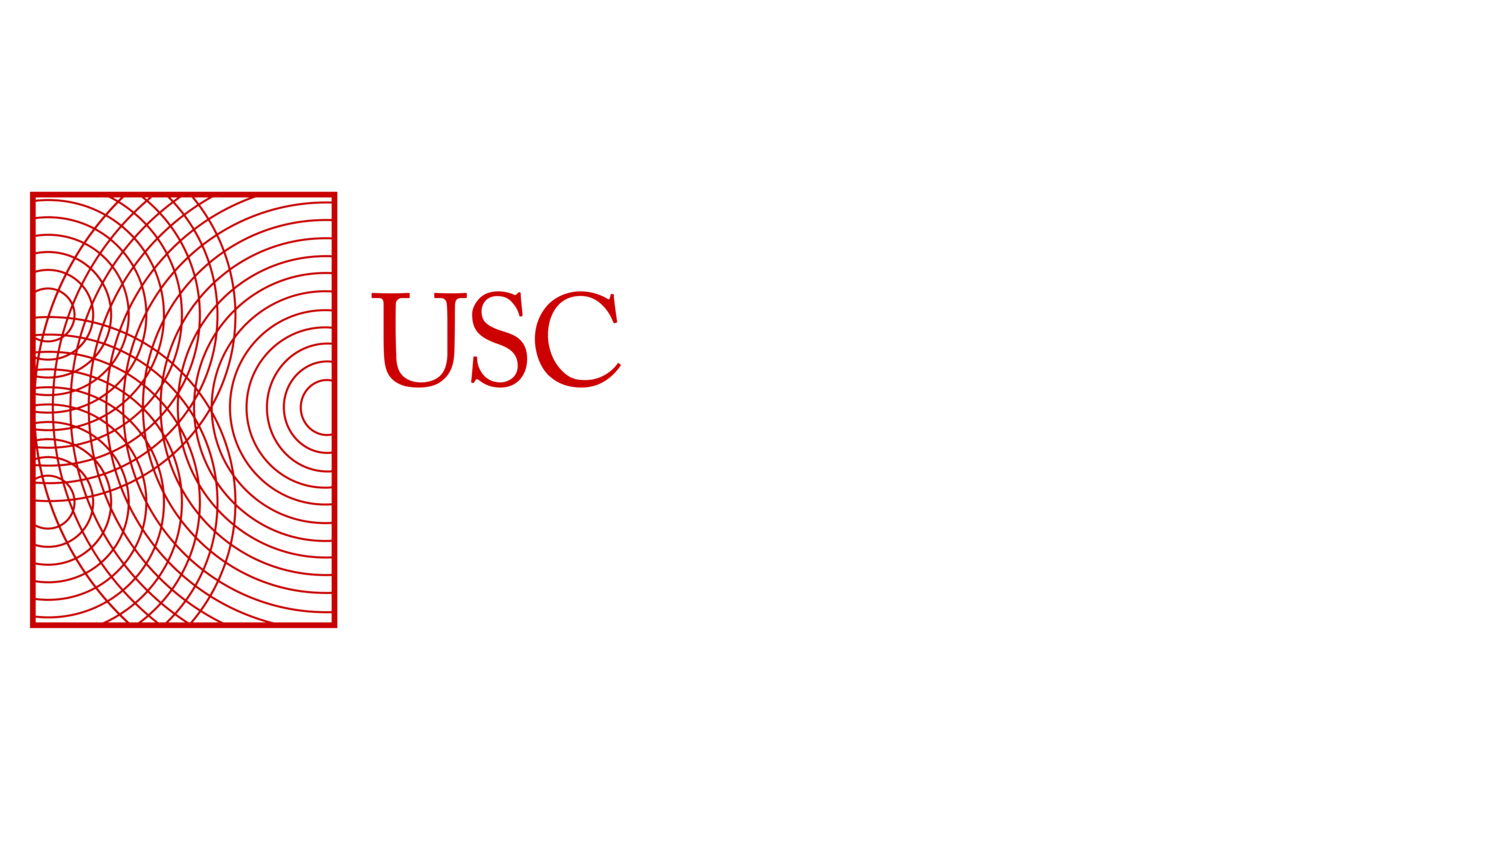 USC Center for Body Computing